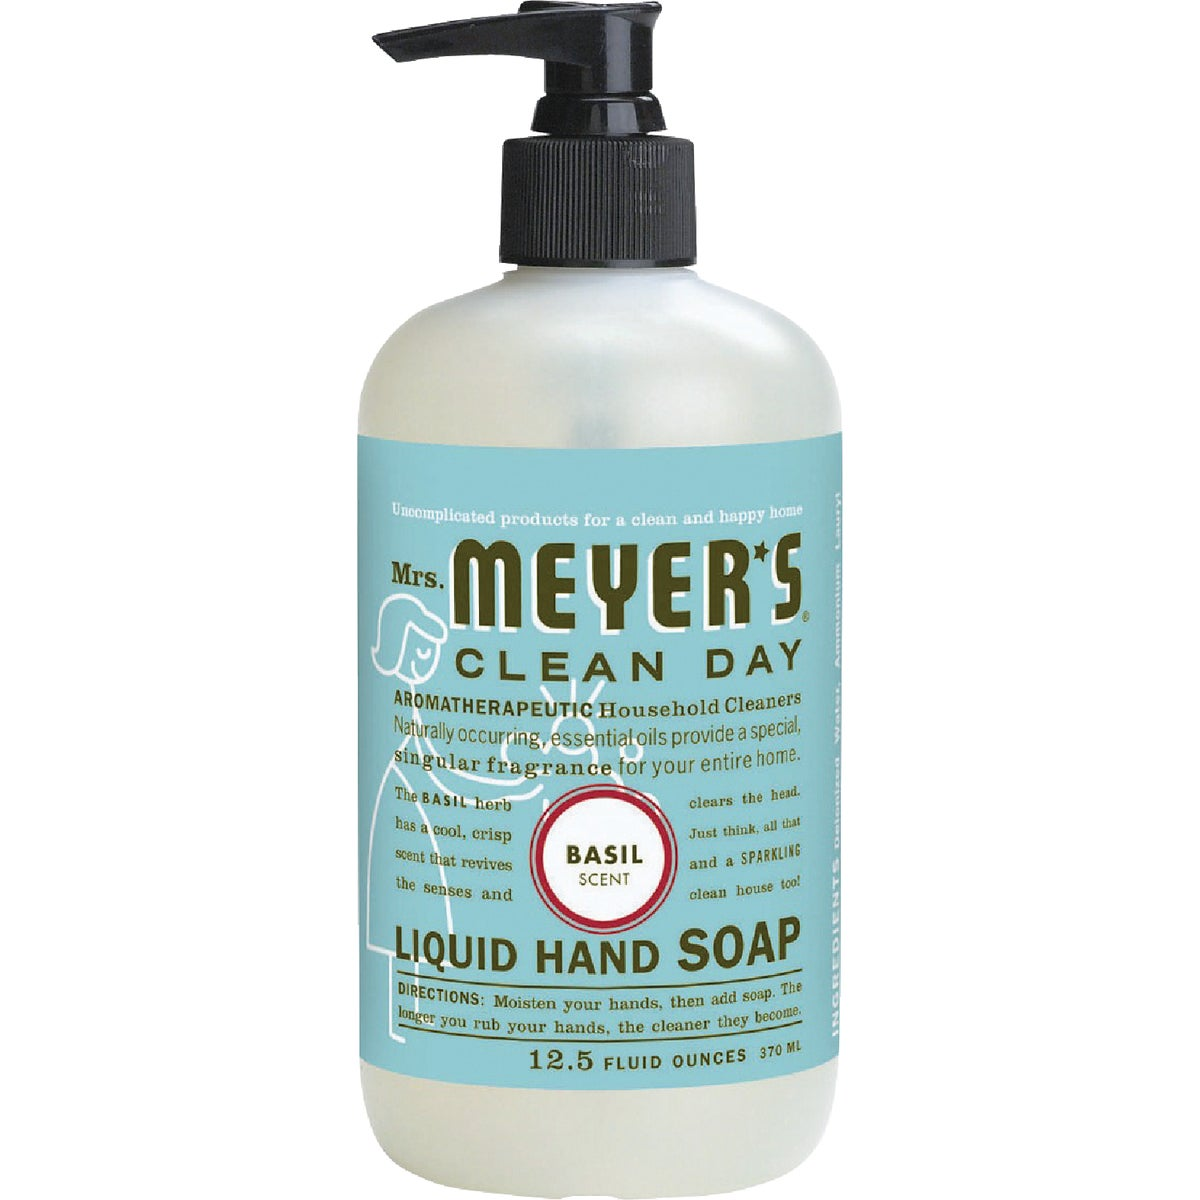 12.5OZ BAS LIQ HAND SOAP - 14104 by Mrs Meyers Clean Day